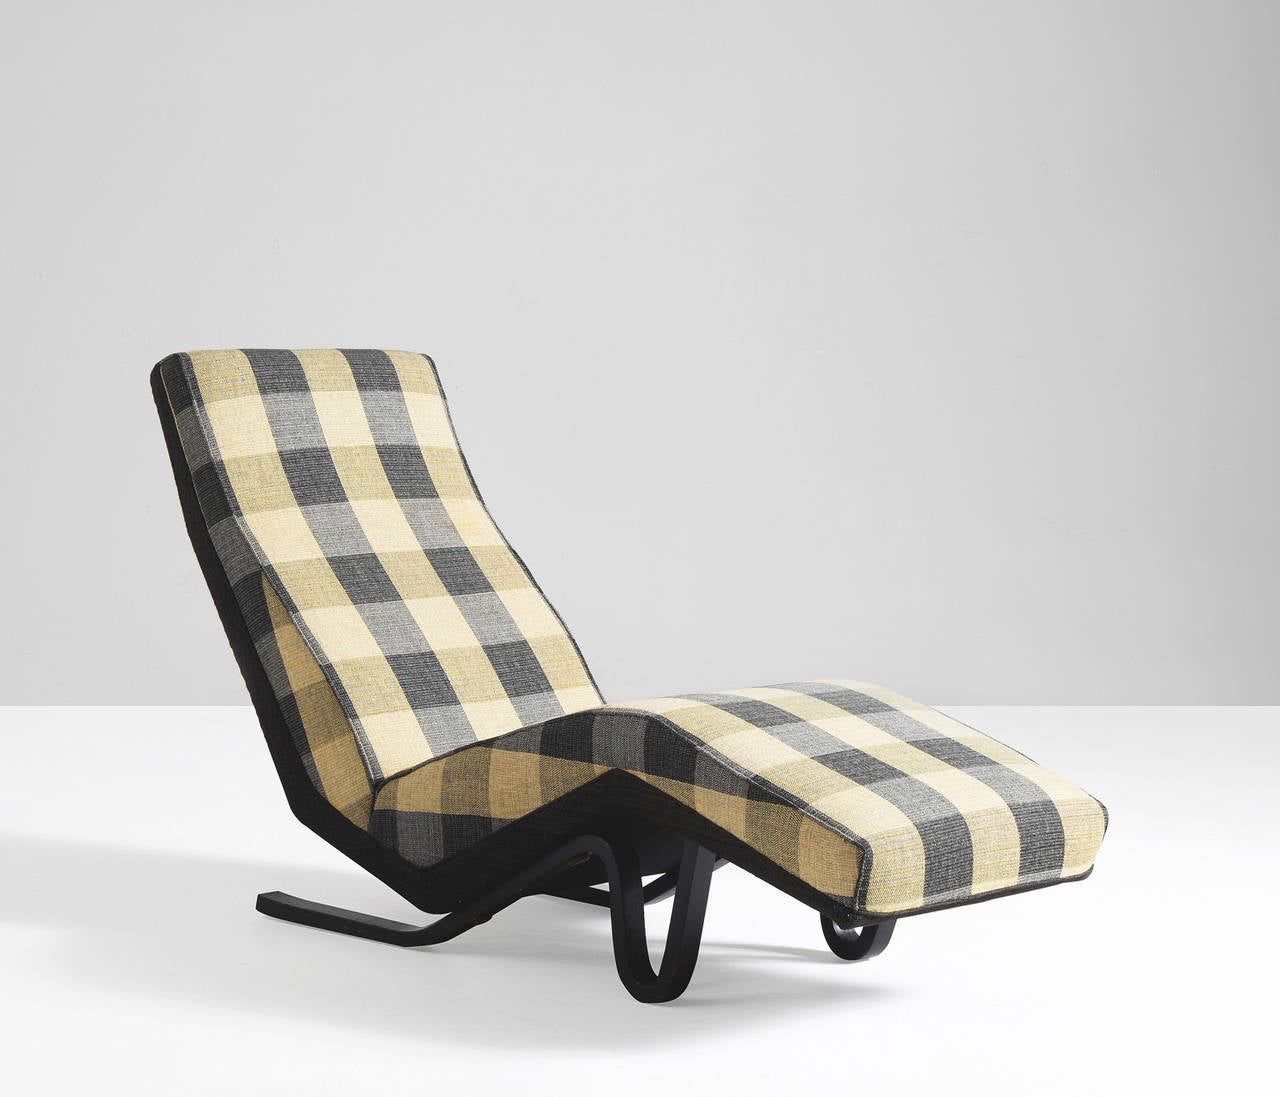 Chaise longue by andrew j milne at 1stdibs for Chaise longue london